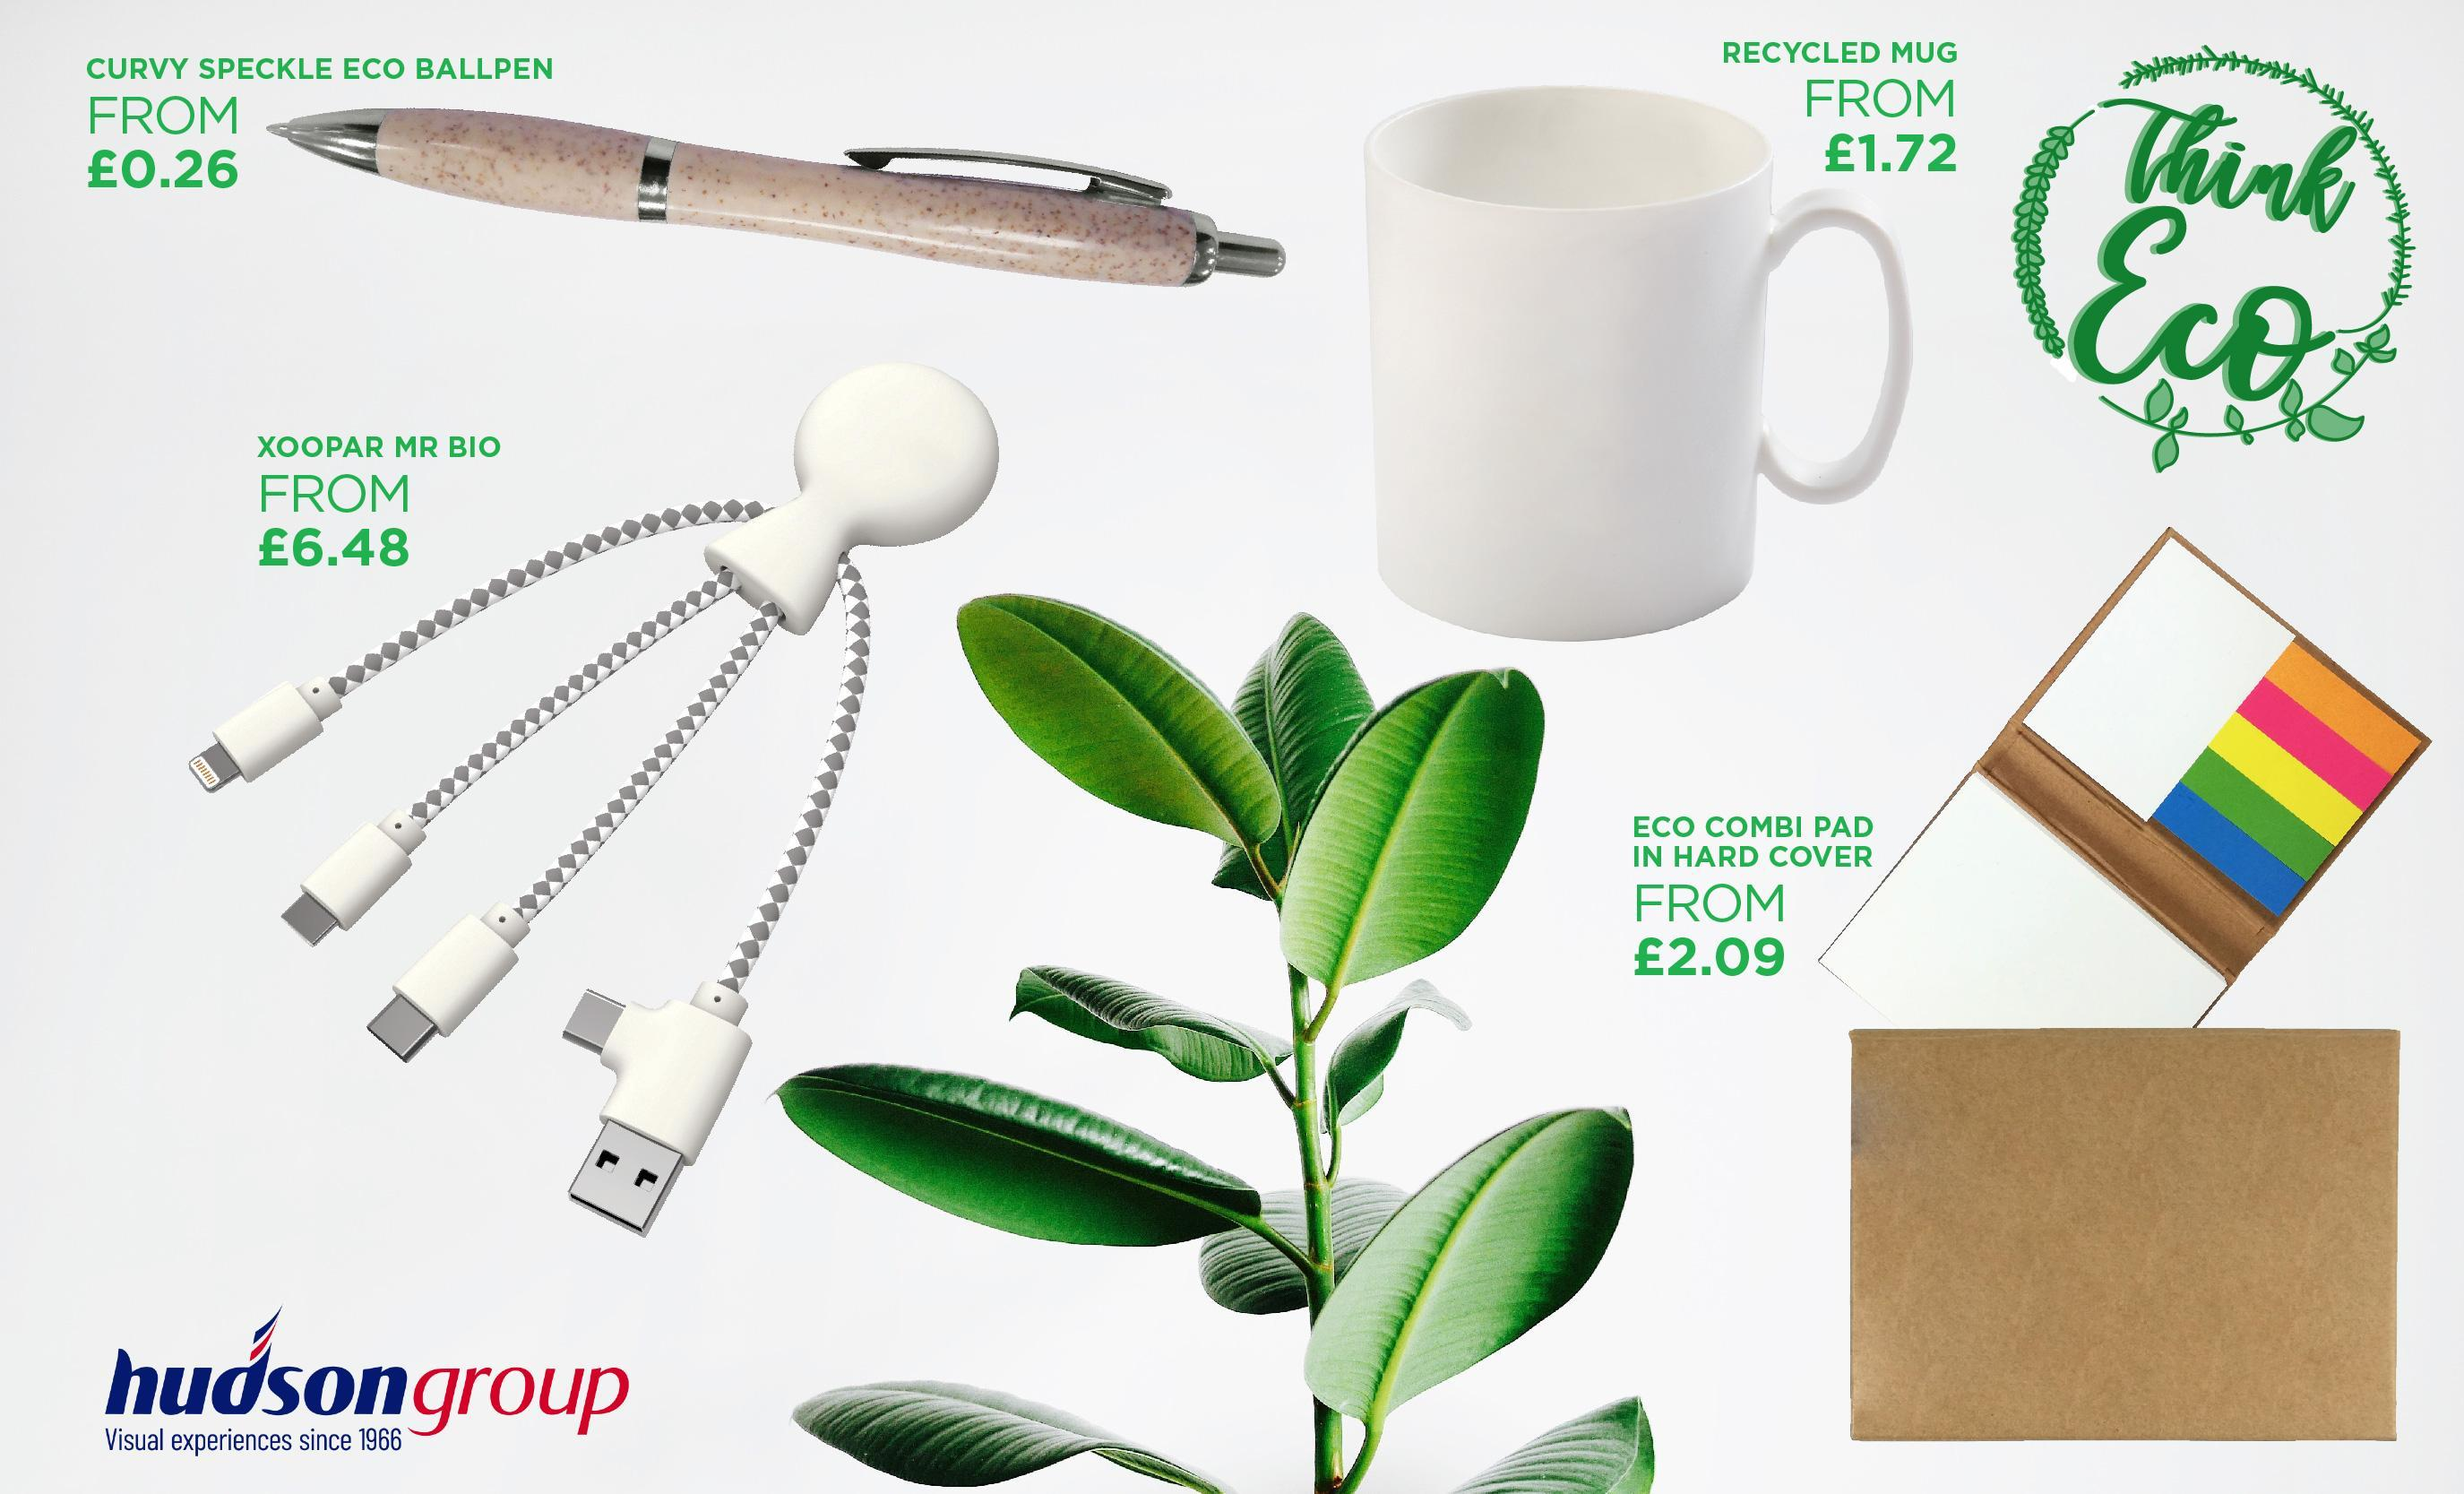 Hudson Group offers eco-friendly promotional products